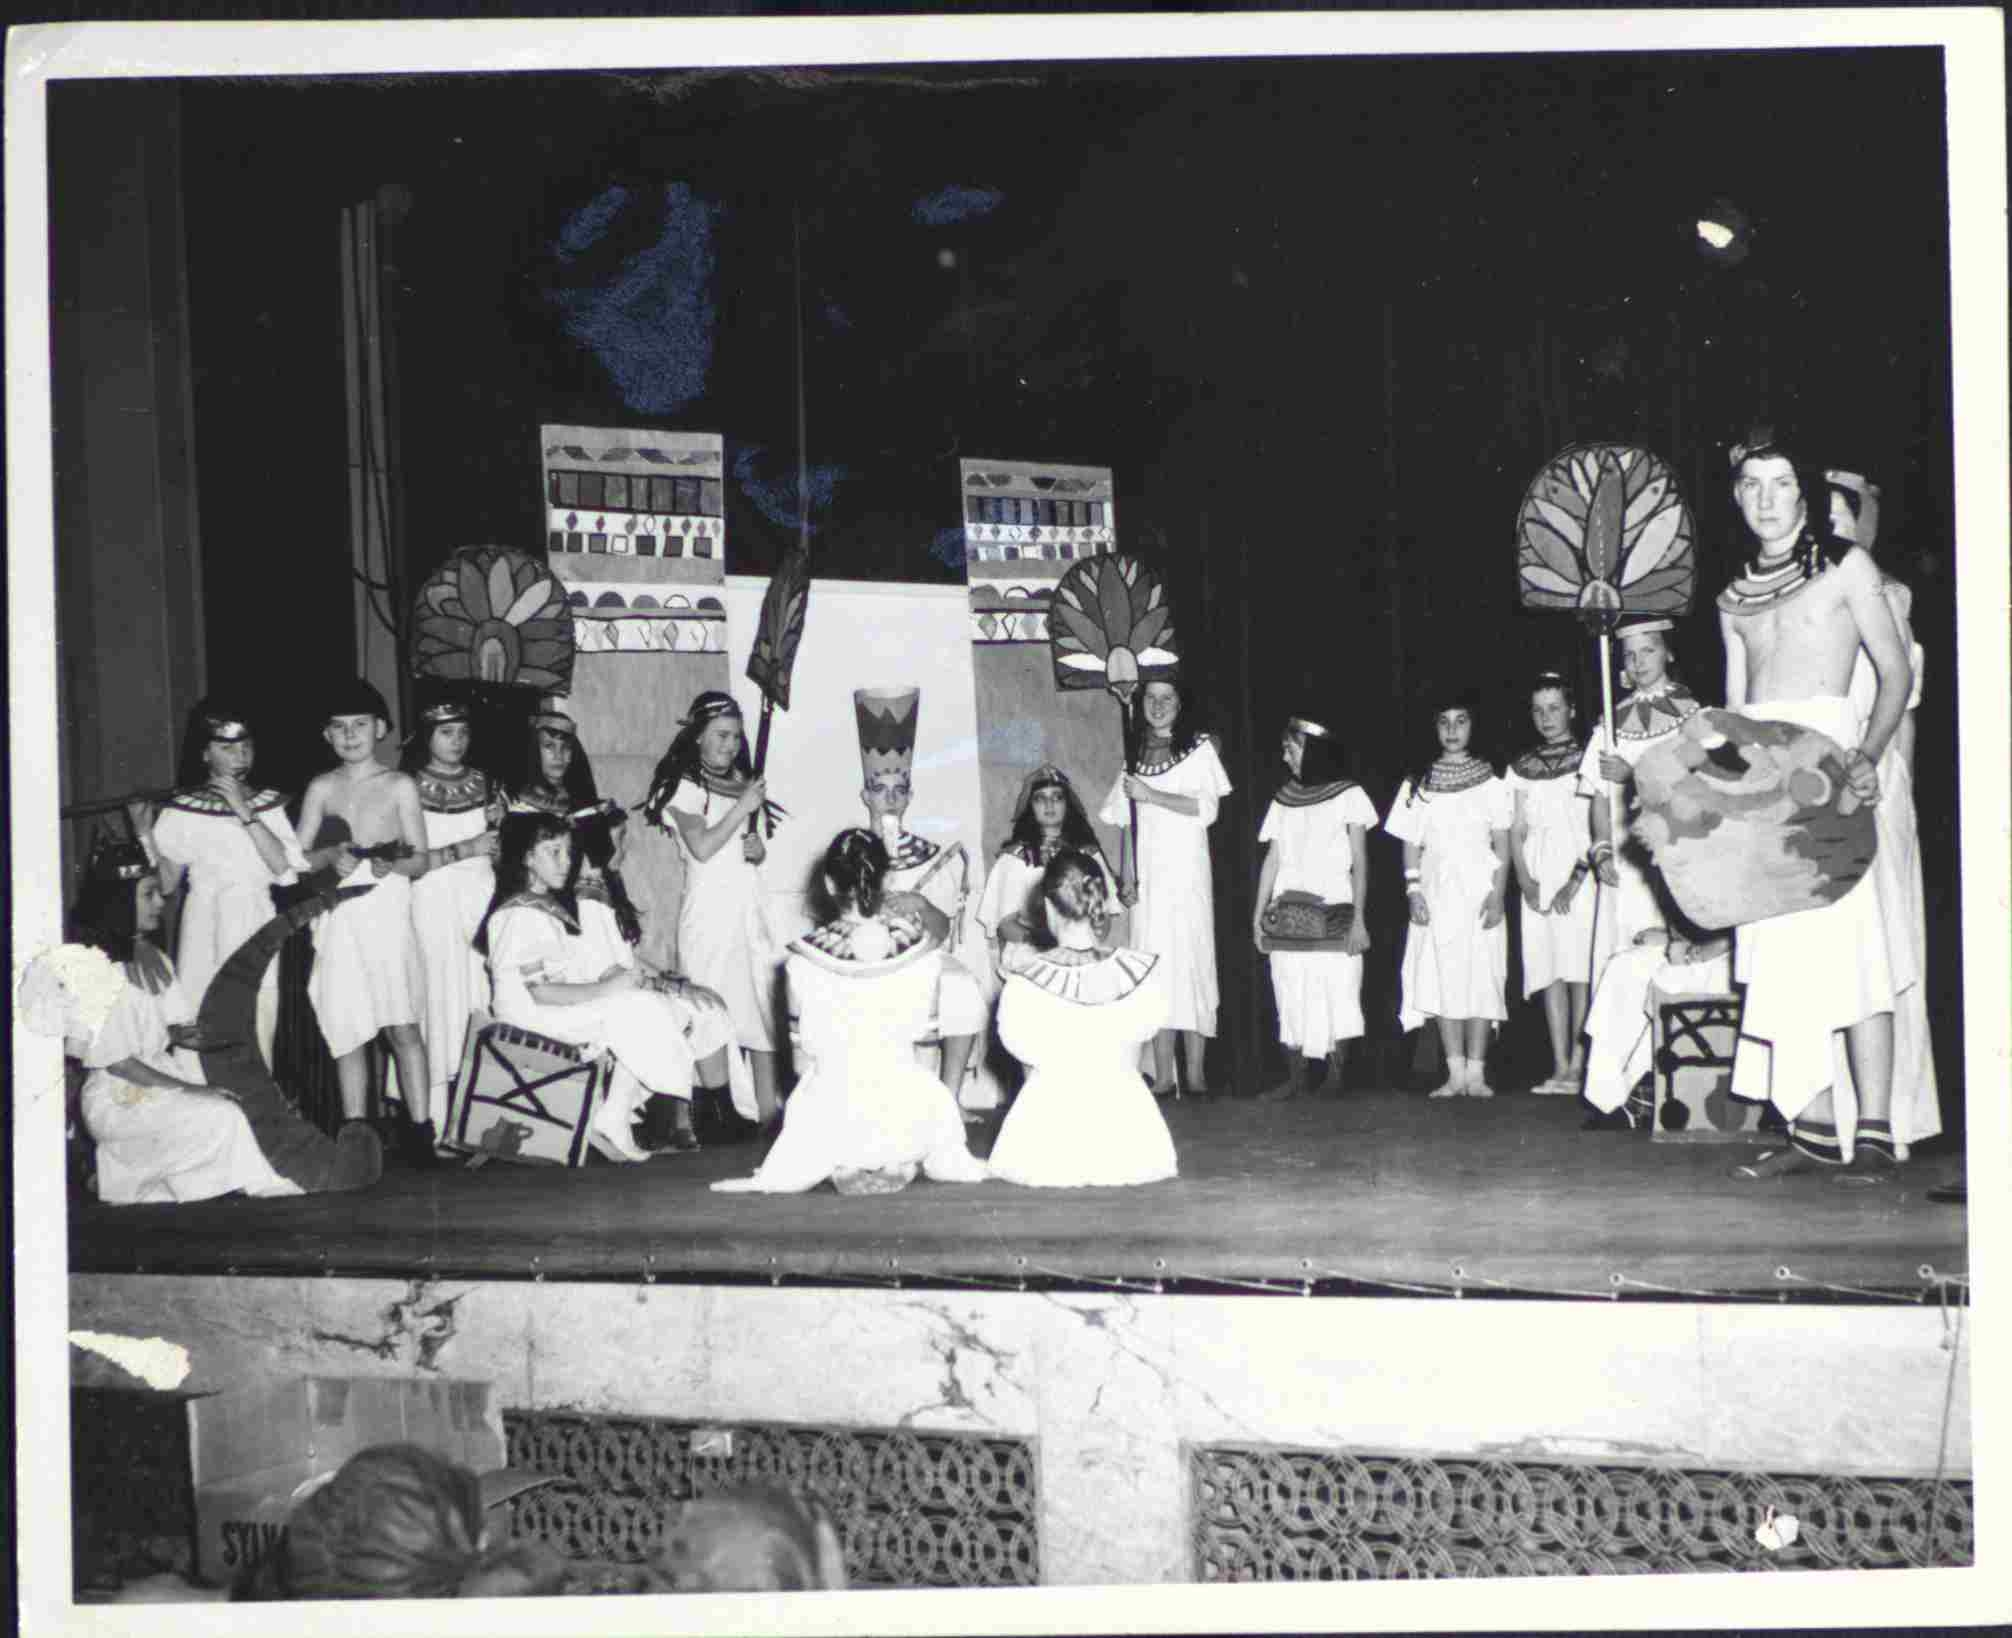 children in Egyptian costume on stage